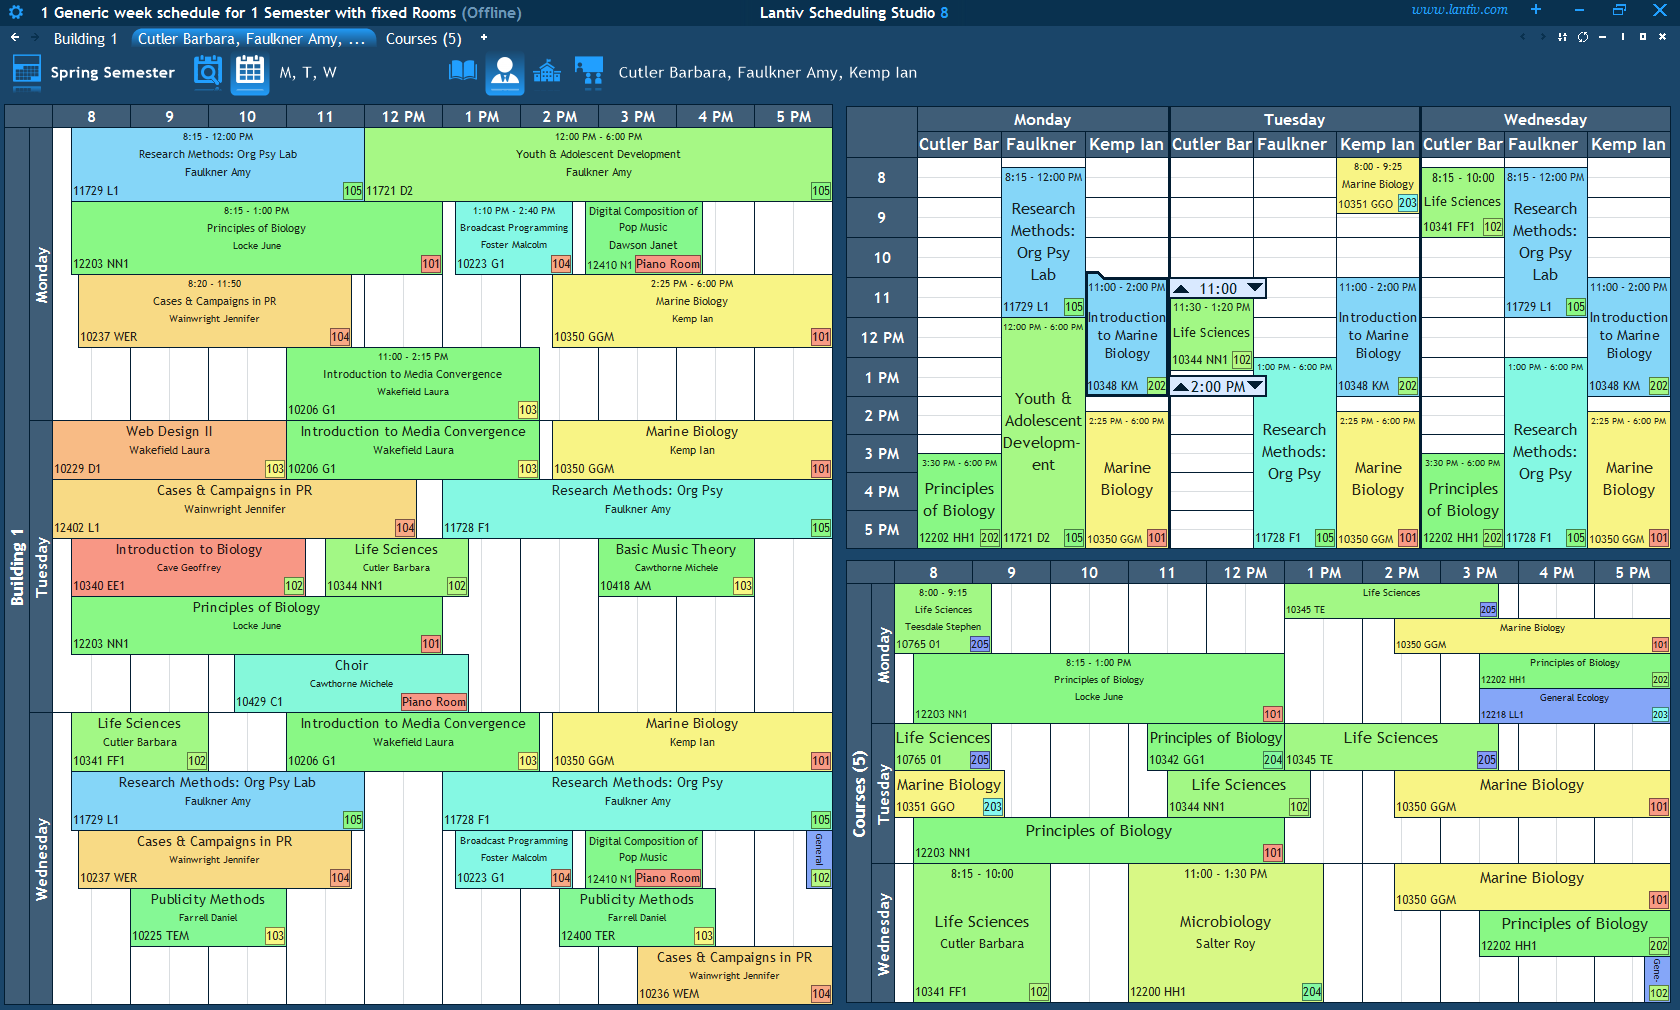 screenshot of college scheduling software multiple users collaborating